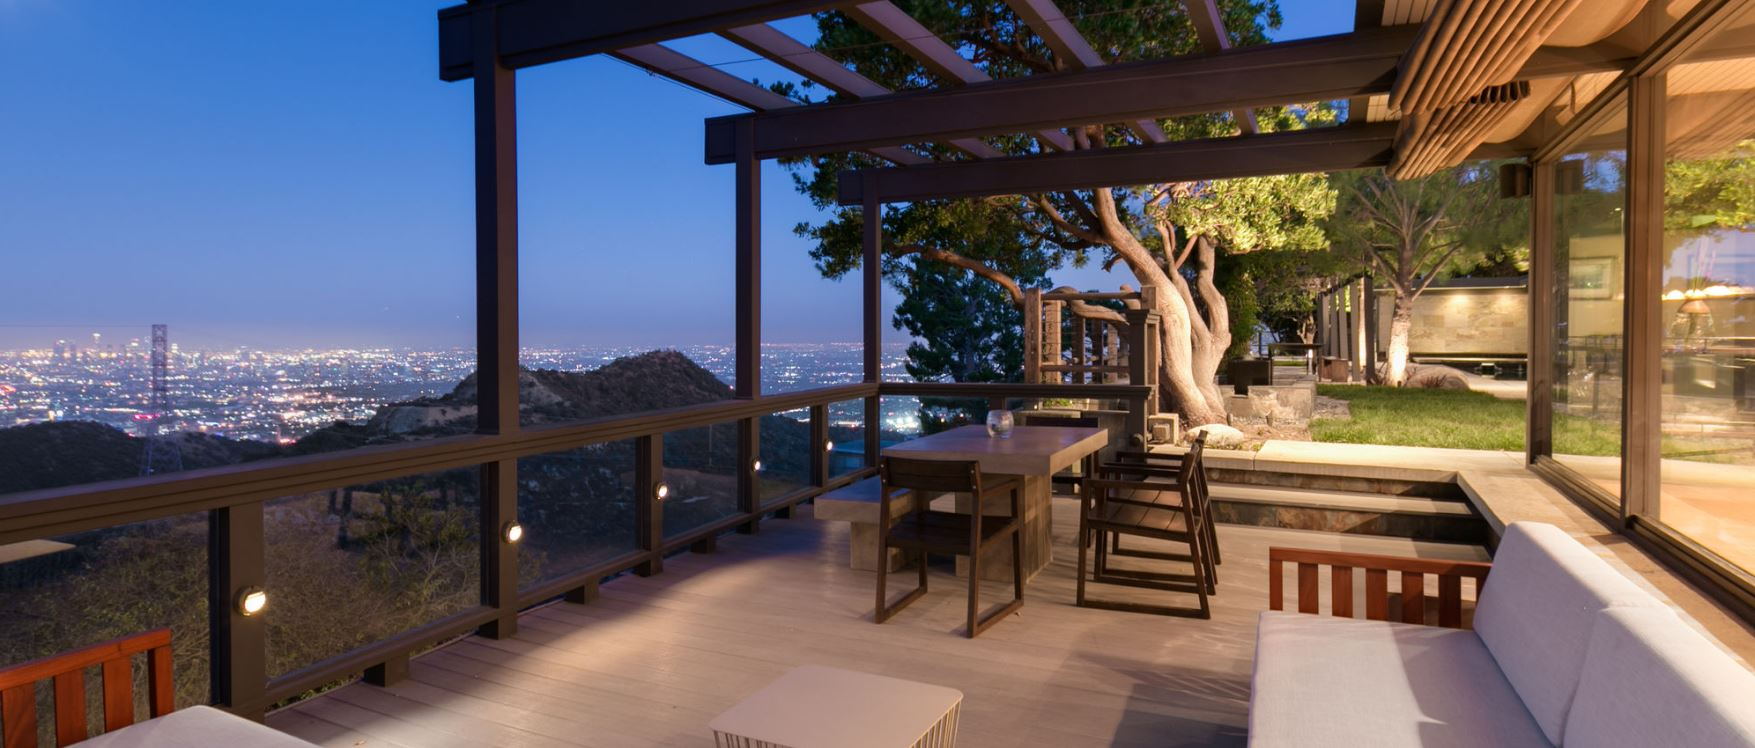 5 BR Hollywood Villa with Views